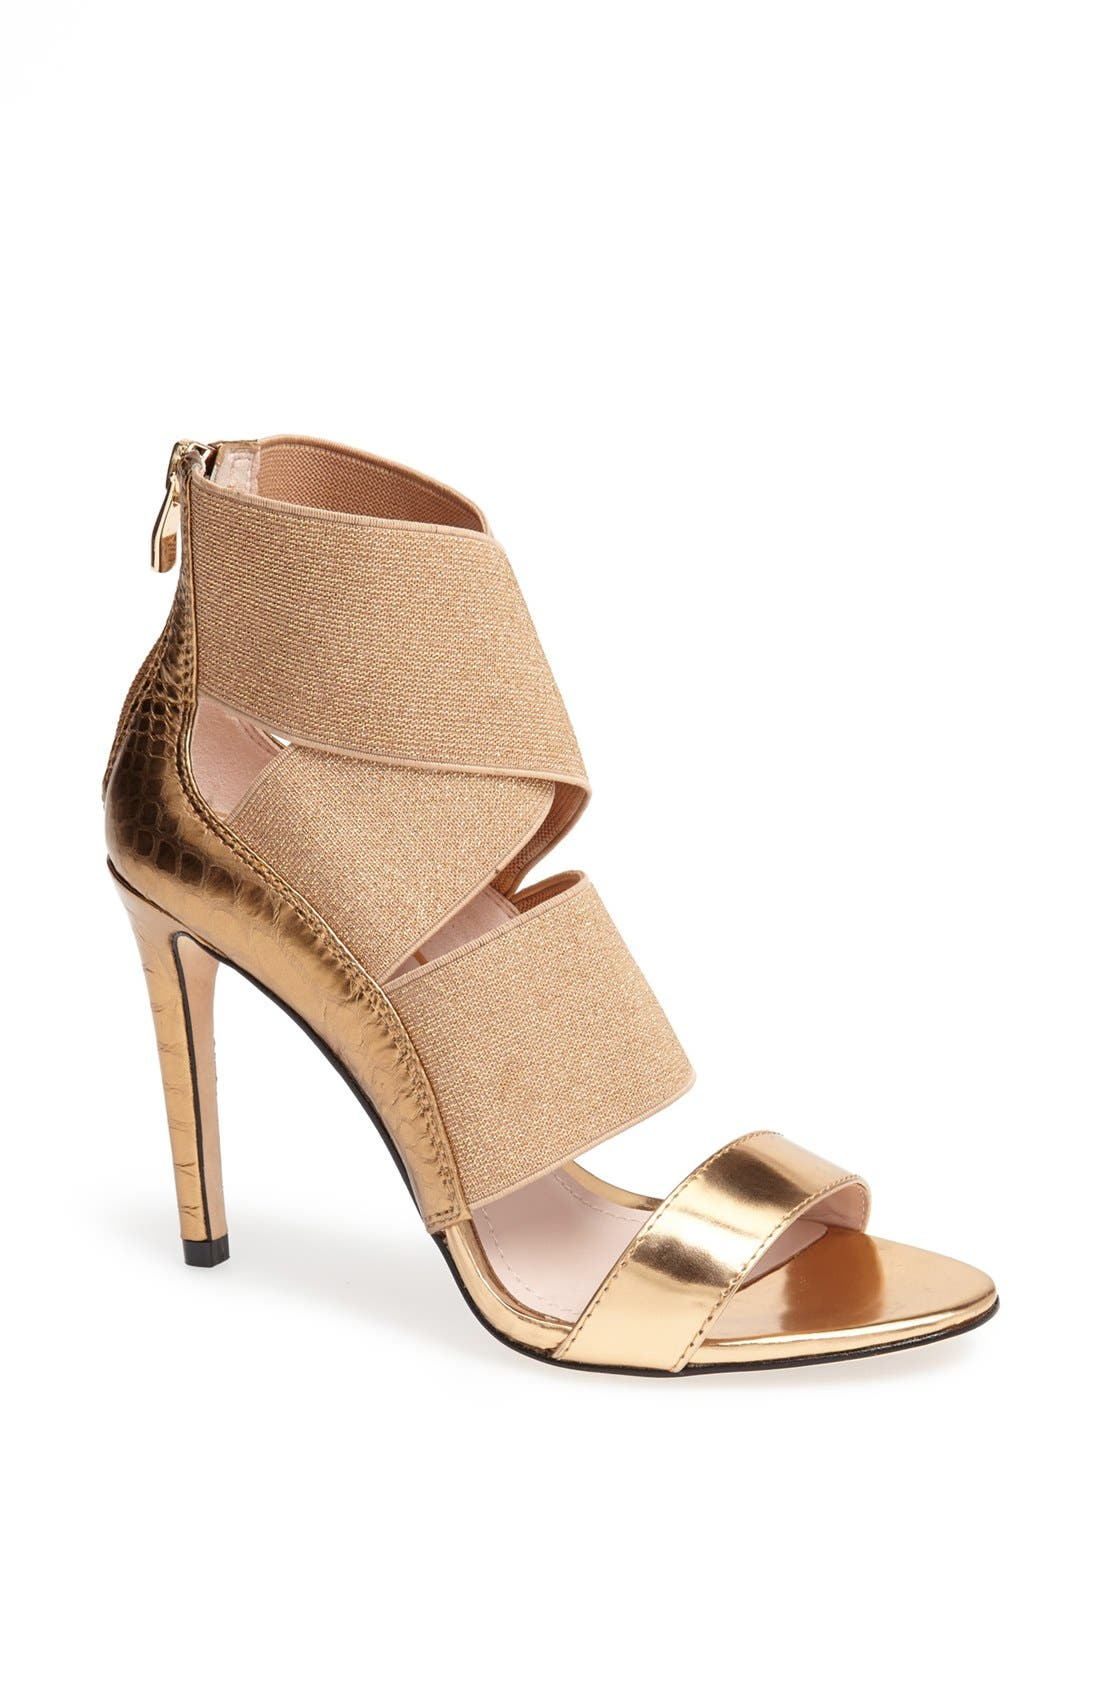 Alternate Image 1 Selected - Vince Camuto 'Ondetti' Sandal